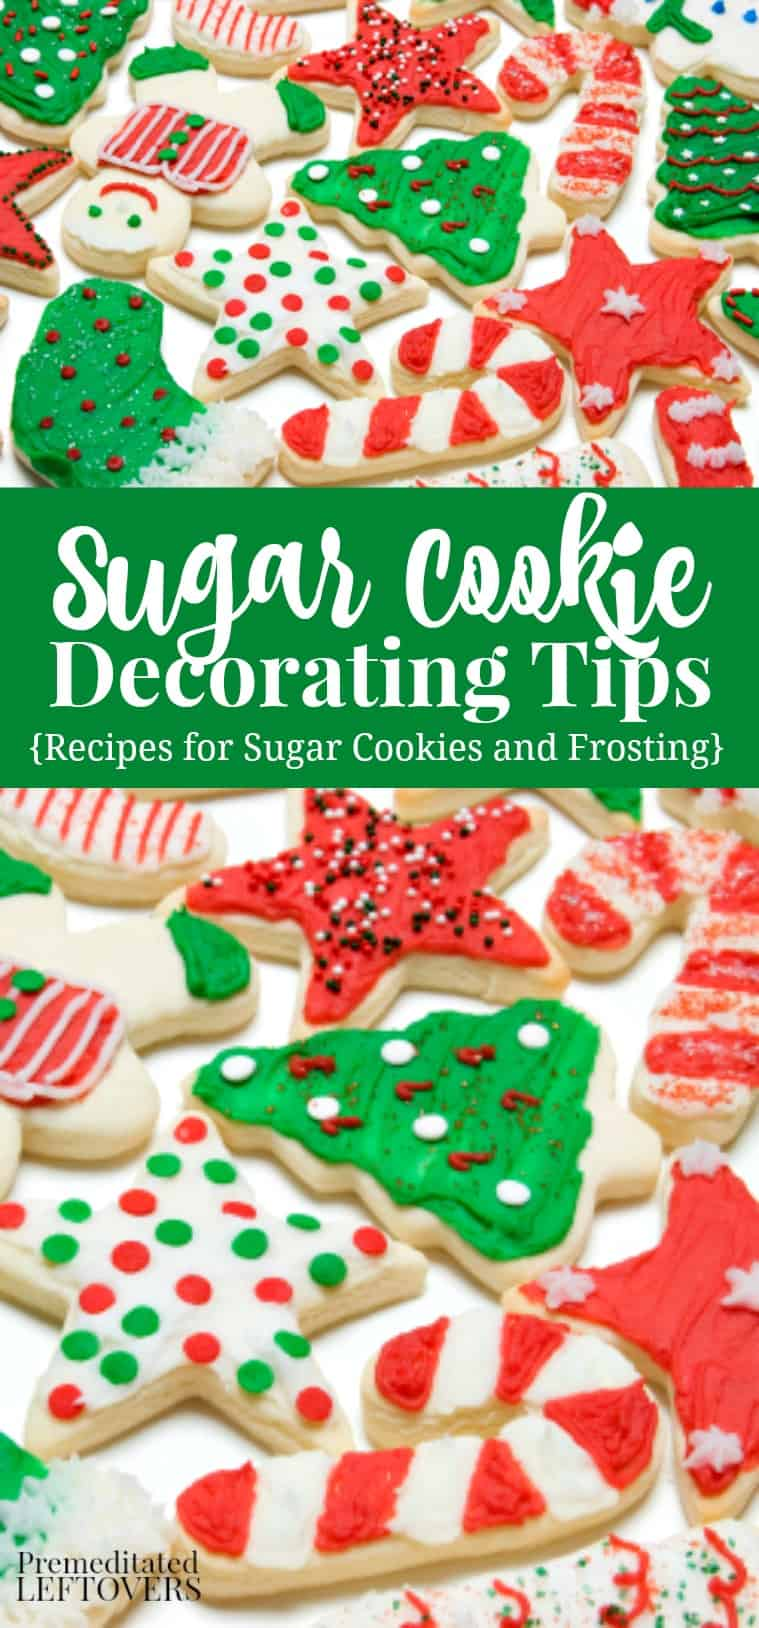 Tips for Decorating Sugar Cookies + Sugar Cookie and Frosting Recipe